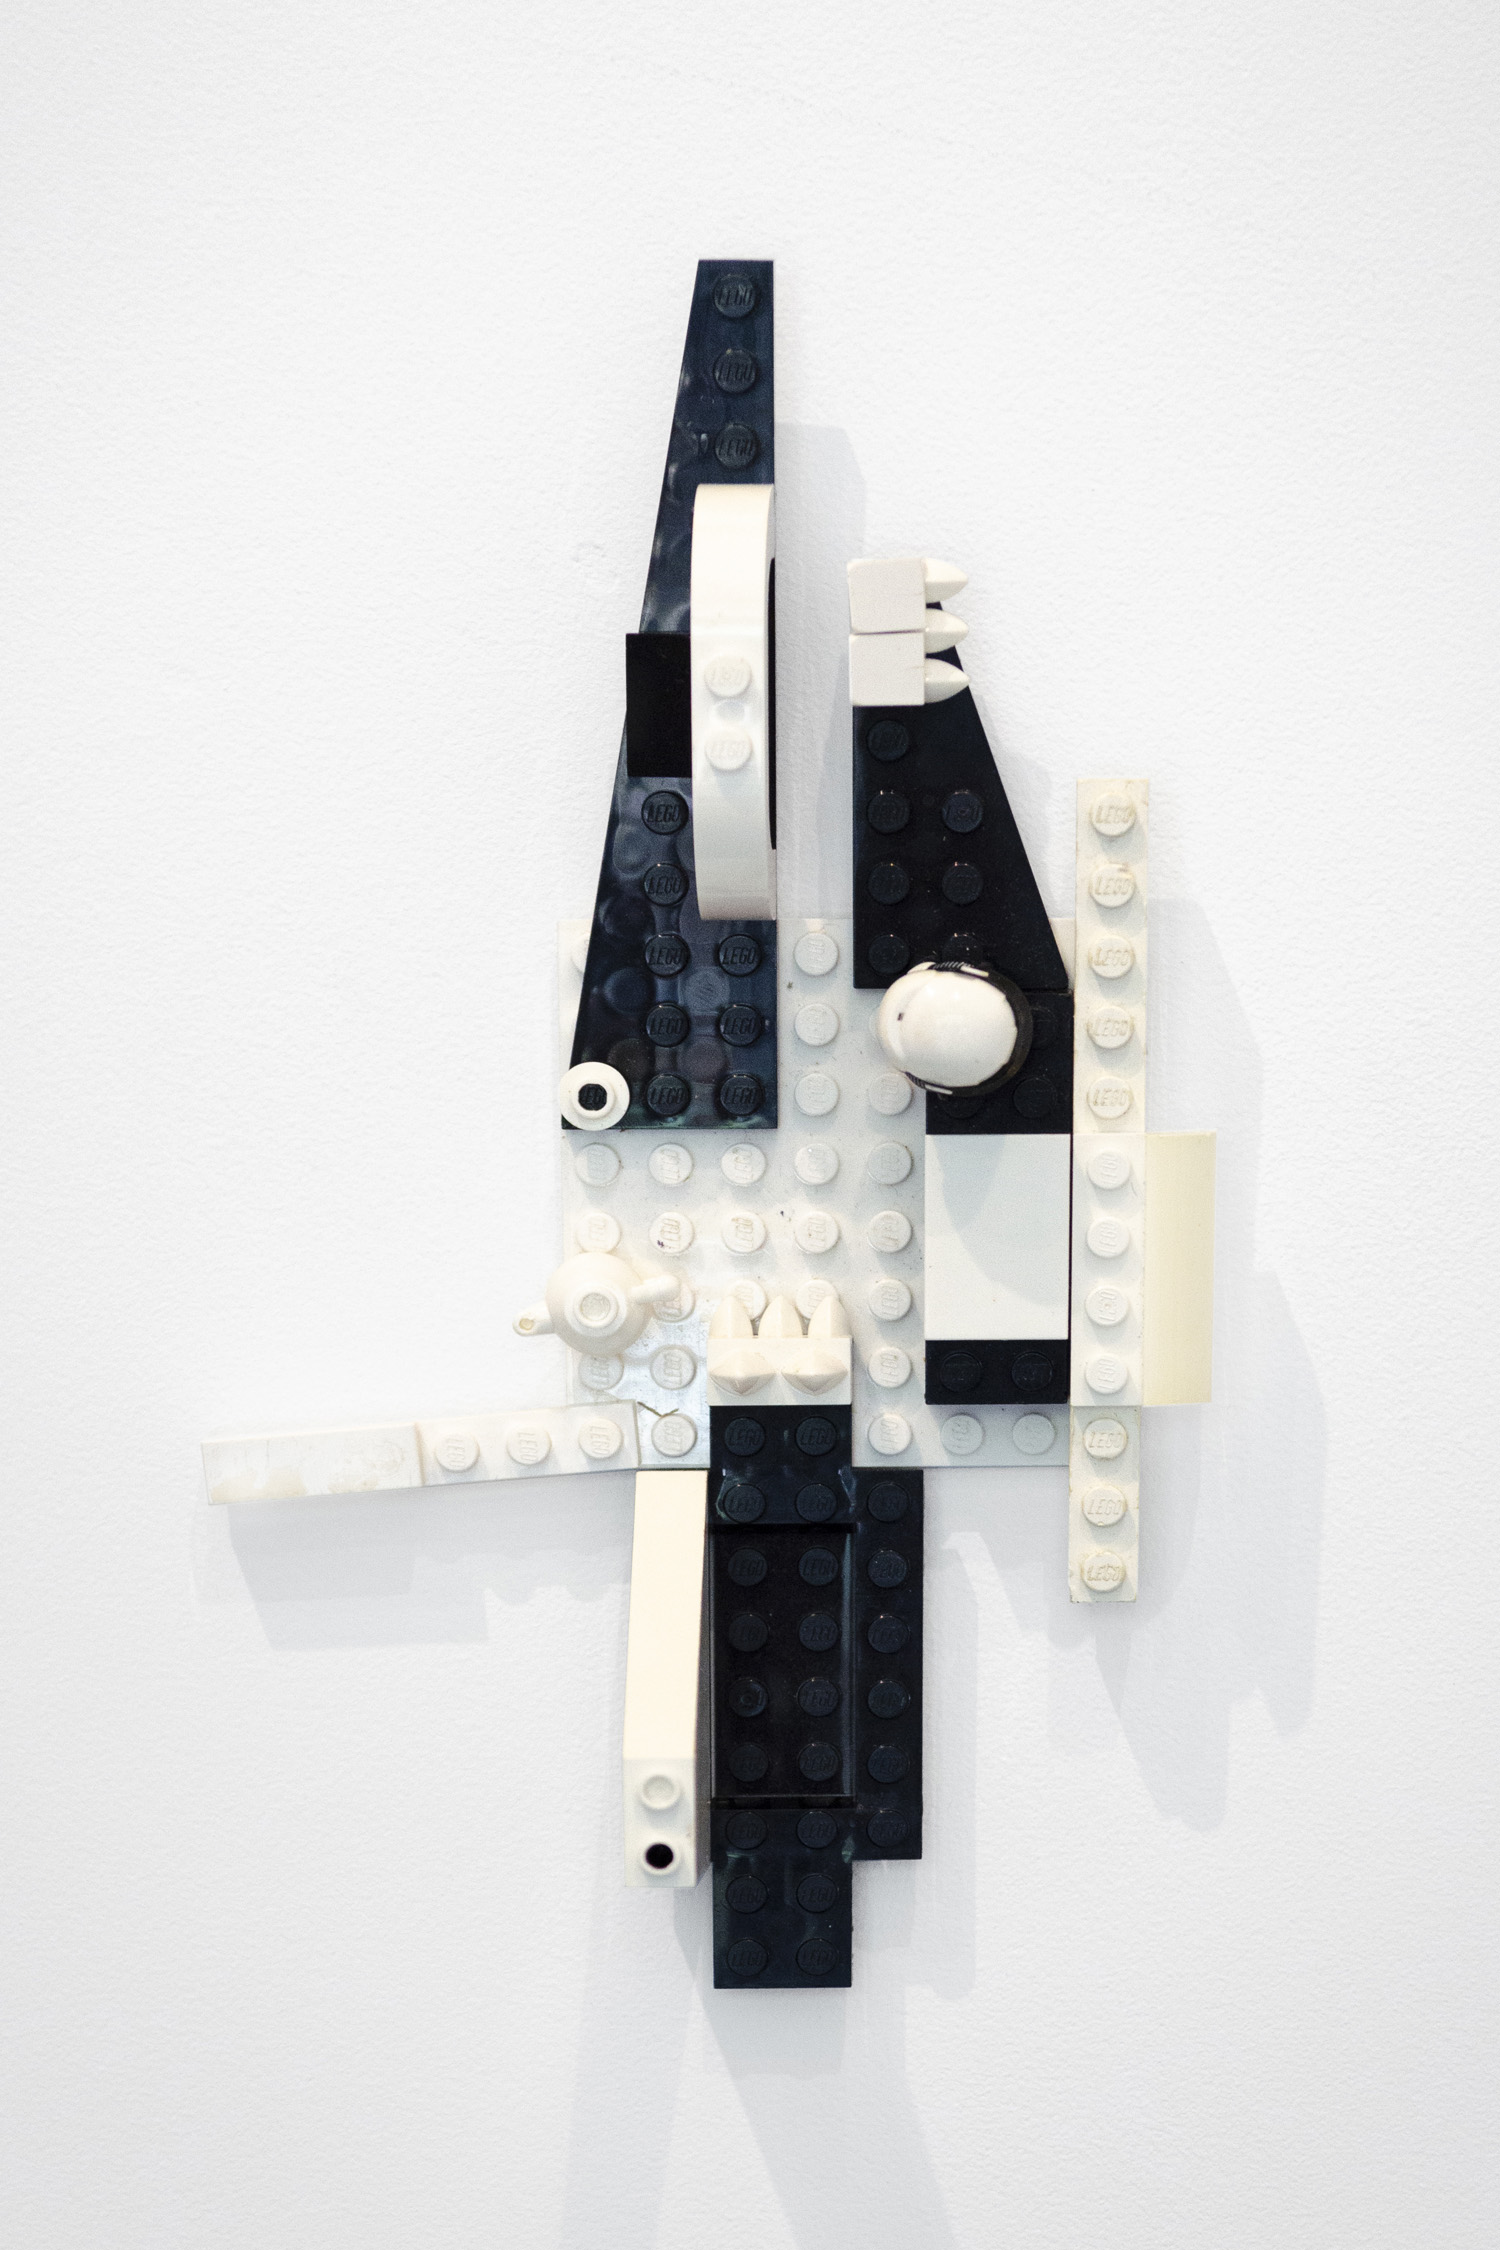 Marlowe Broomberg,   Lego Painting #13 (from Lego Paintings Series) , 2019, Lego pieces, 8 x 3 x 2.5 inches (20.5 x 7.5 x 6 cm), Unique edition